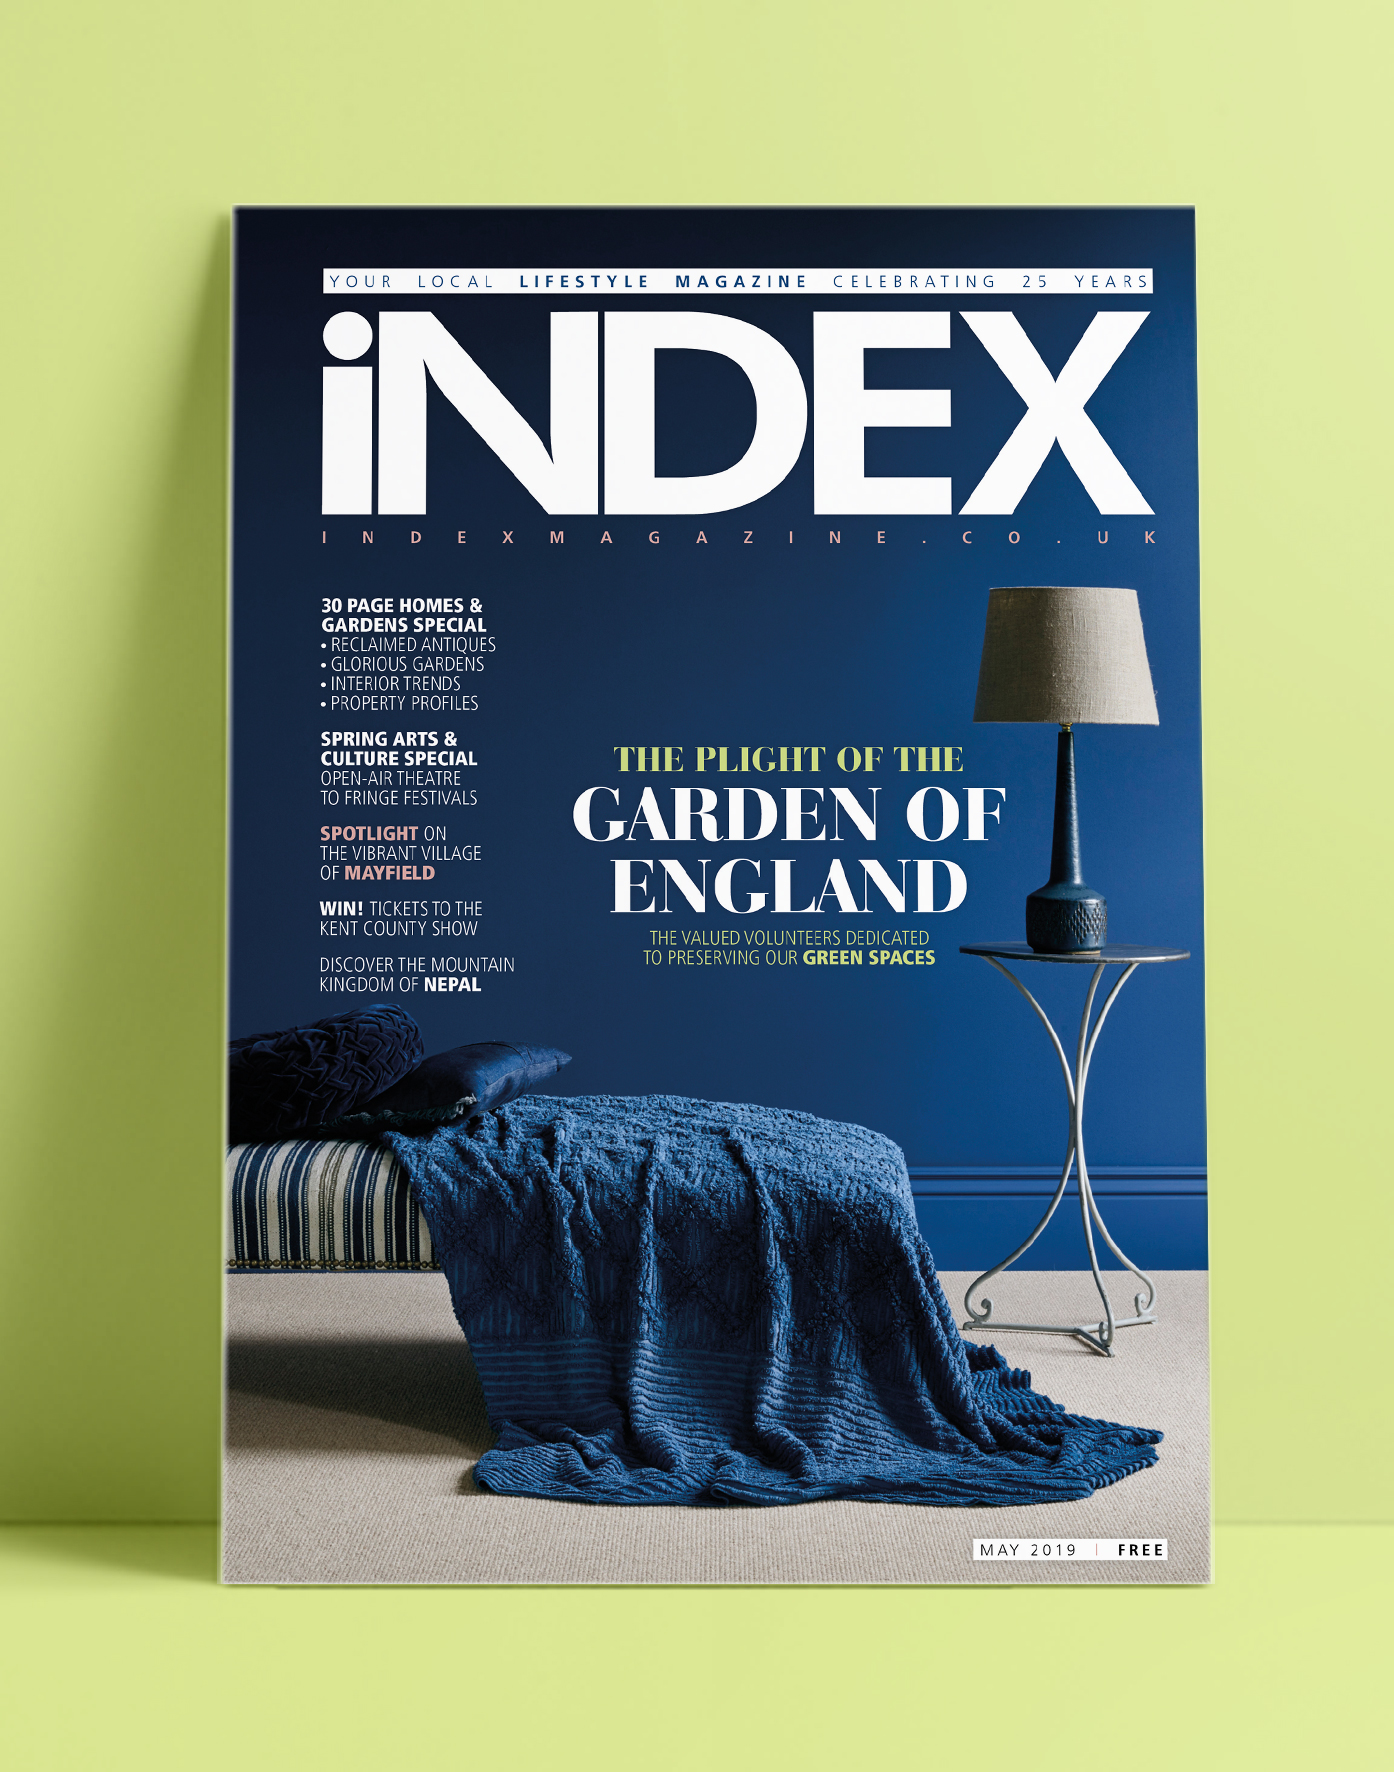 Image for The INDEX Magazine - May 2019